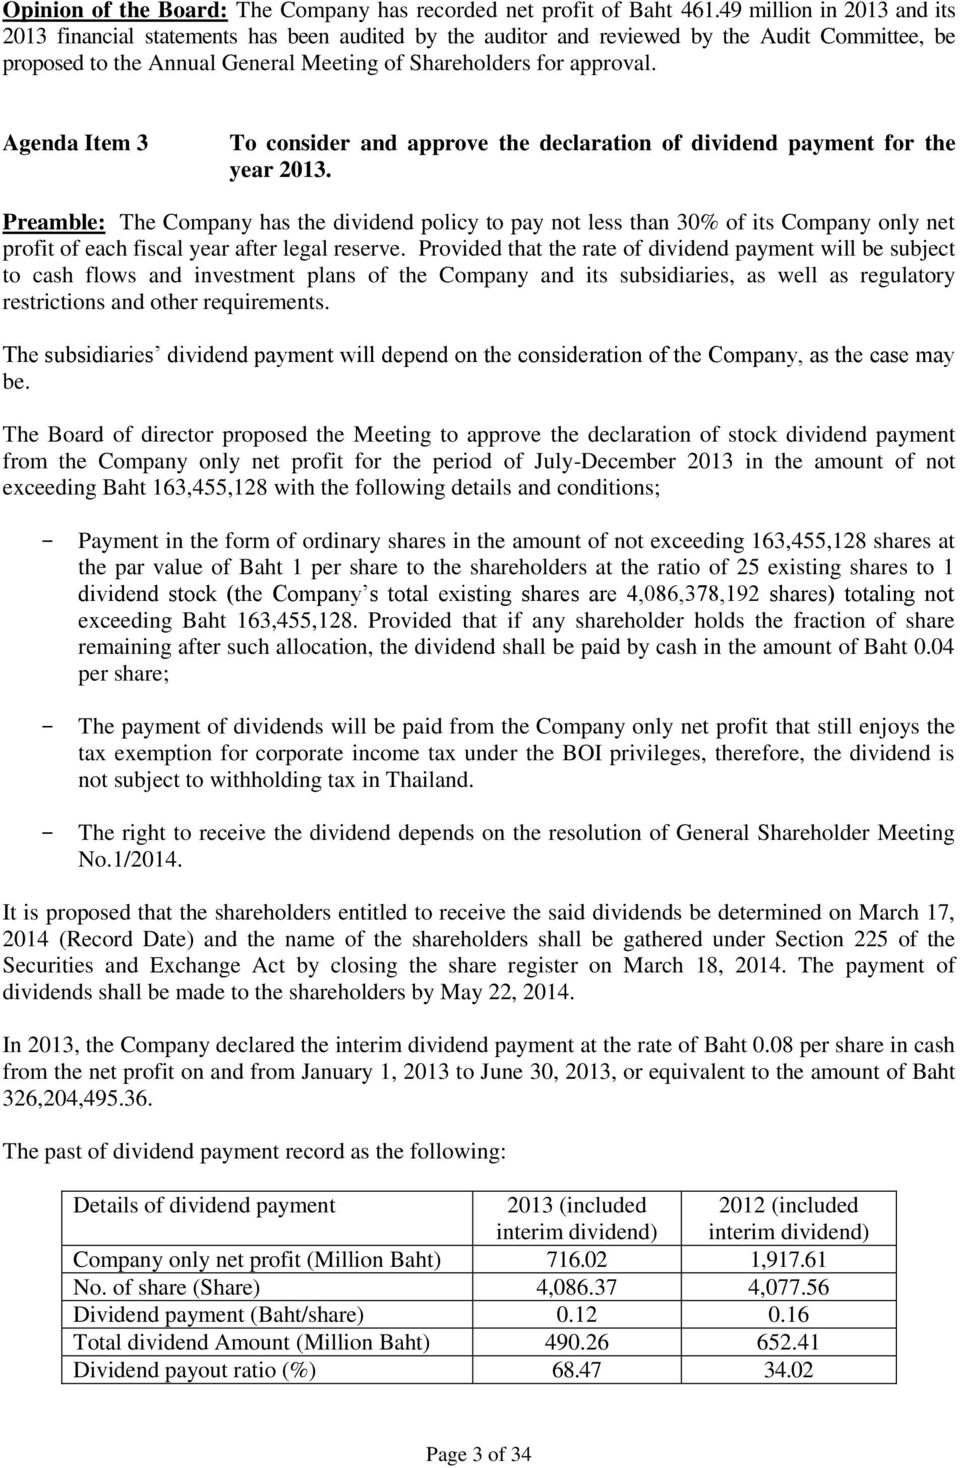 Agenda Item 3 To consider and approve the declaration of dividend payment for the year 2013.